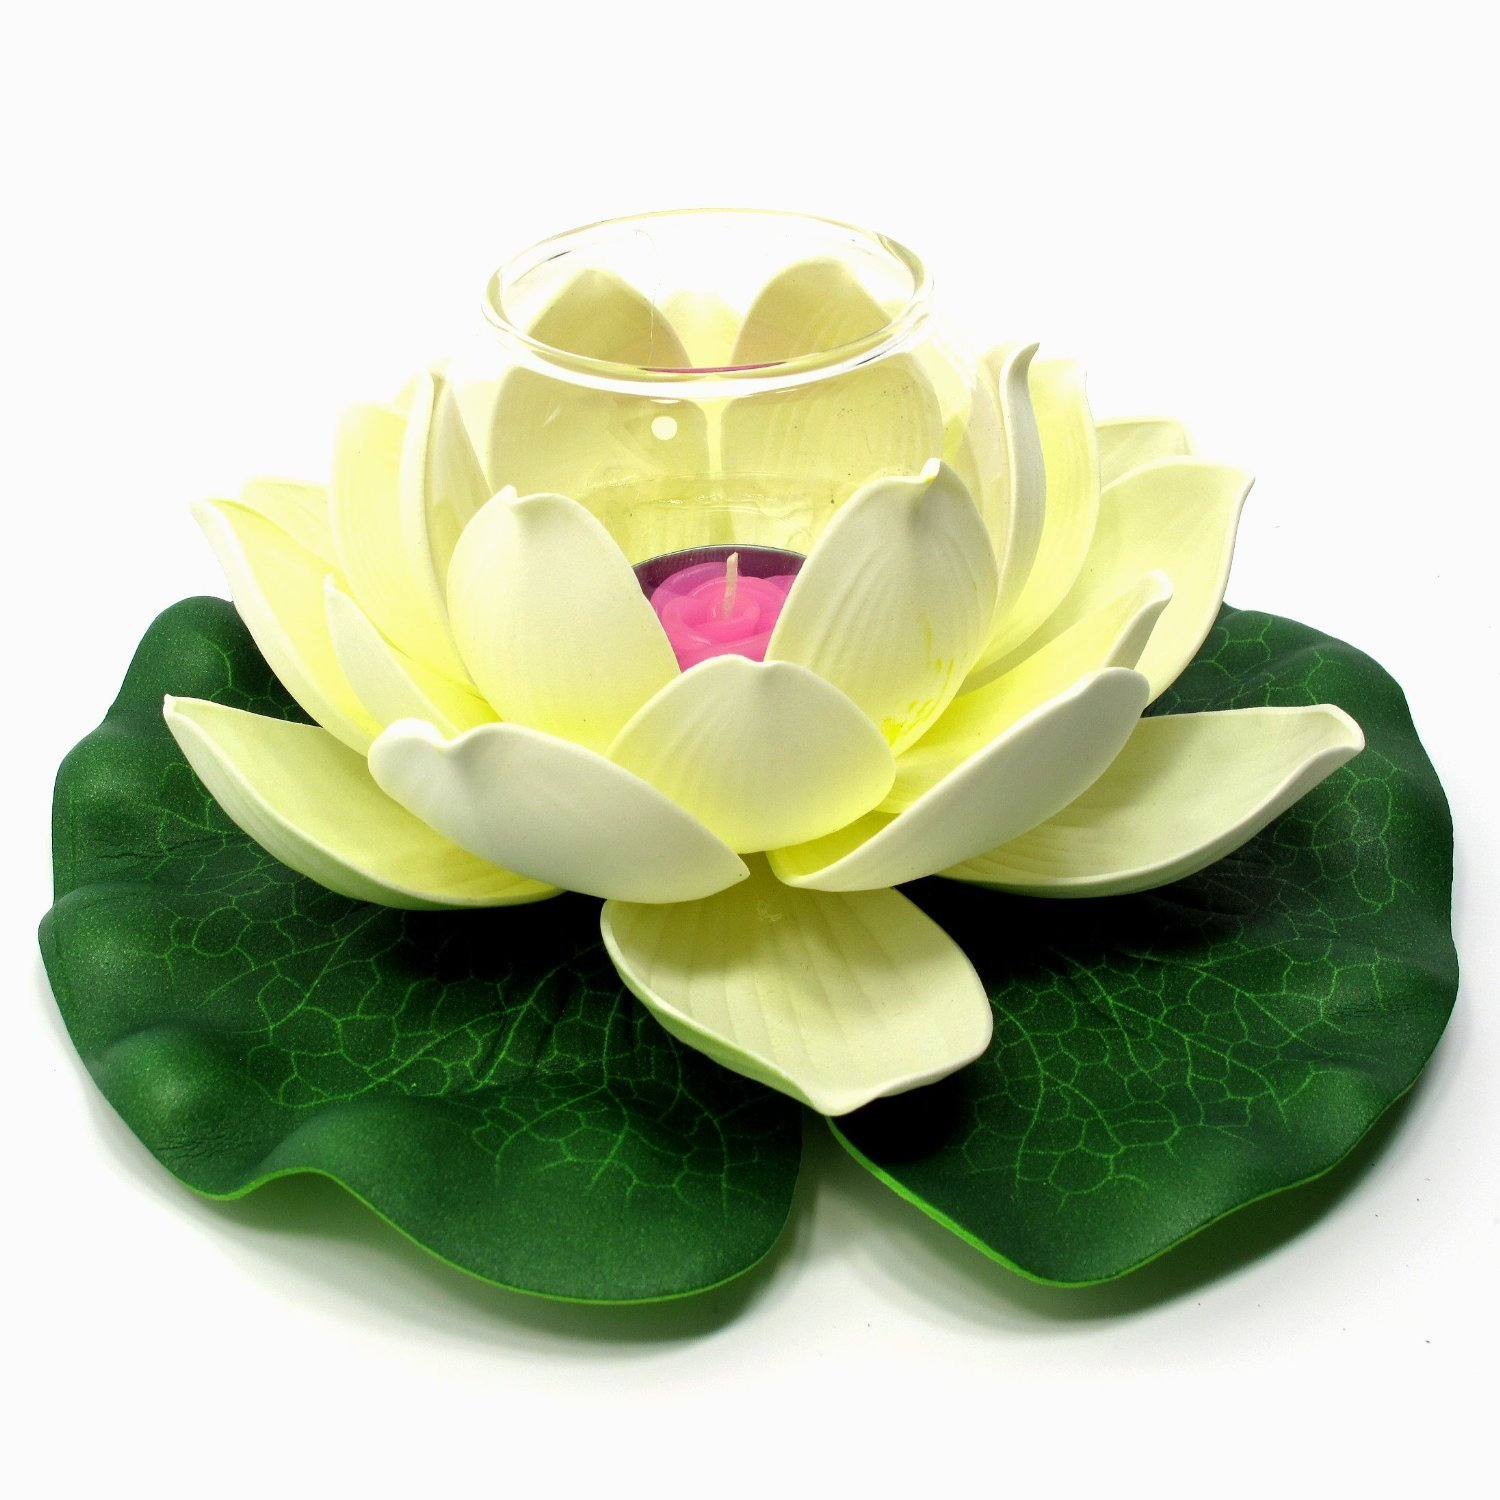 Cheap Glass Lotus Flower Find Glass Lotus Flower Deals On Line At